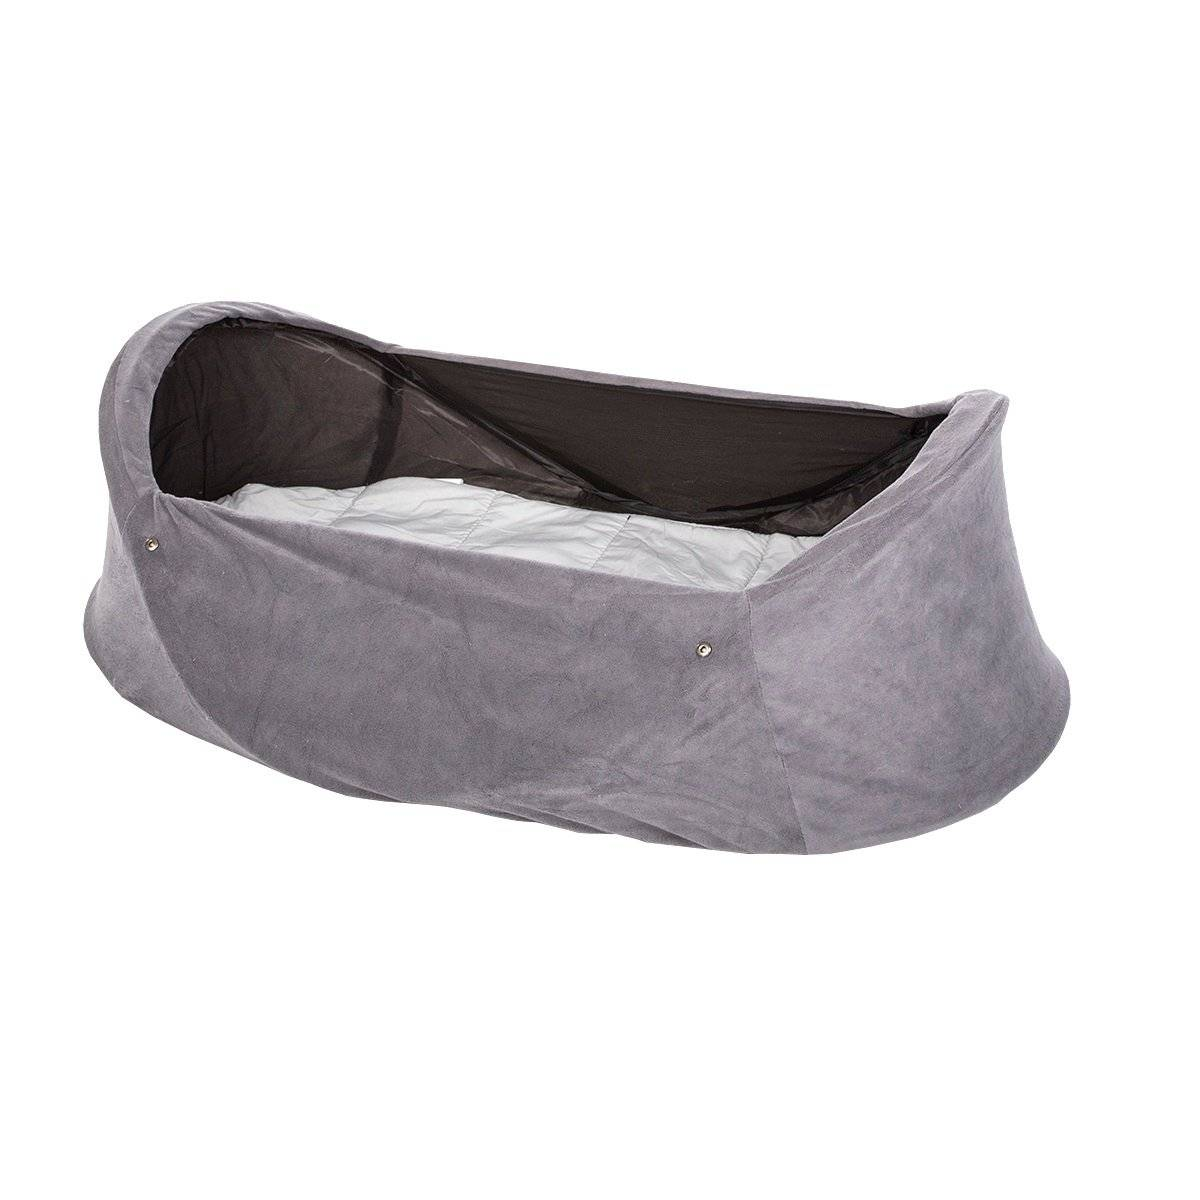 Deryan Premature BabyBox Grey